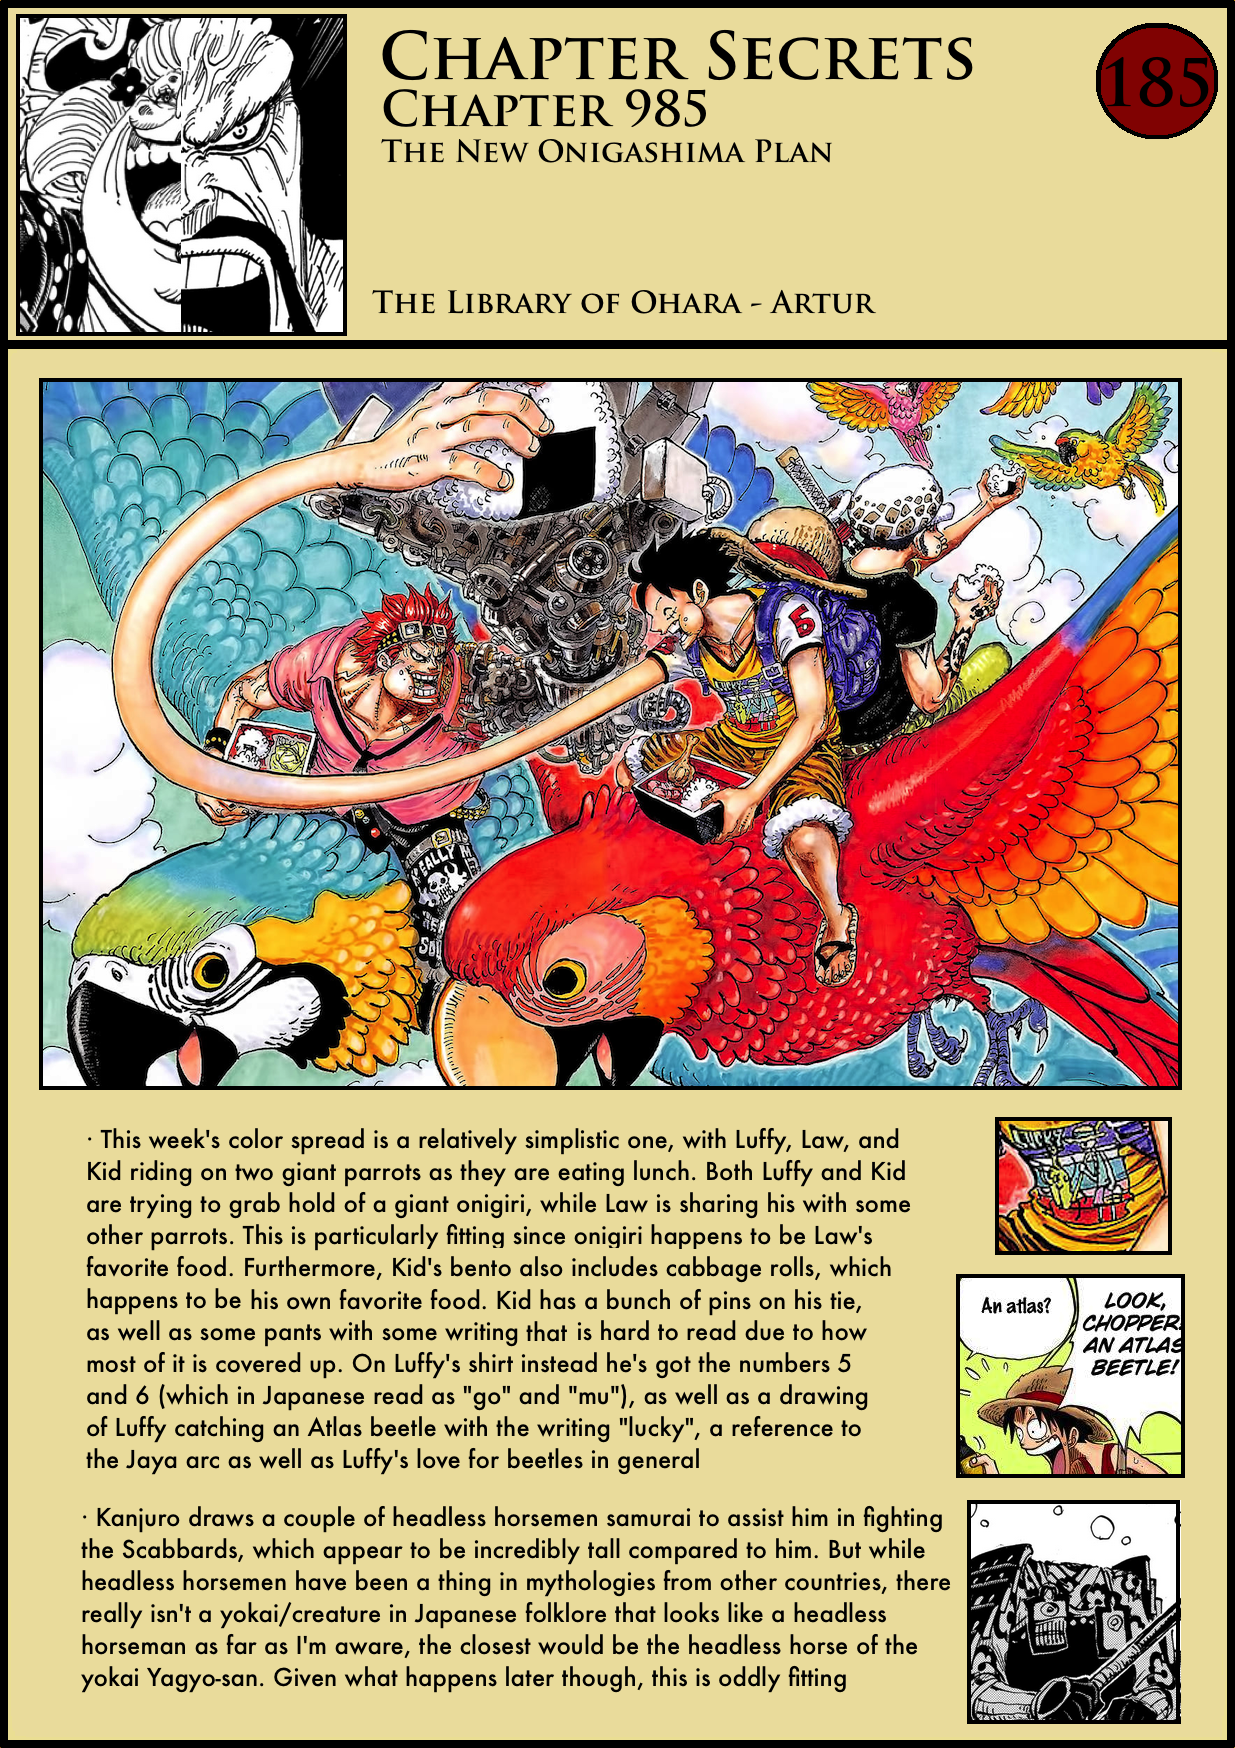 Chapter Secrets Chapter 985 In Depth Analysis The Library Of Ohara